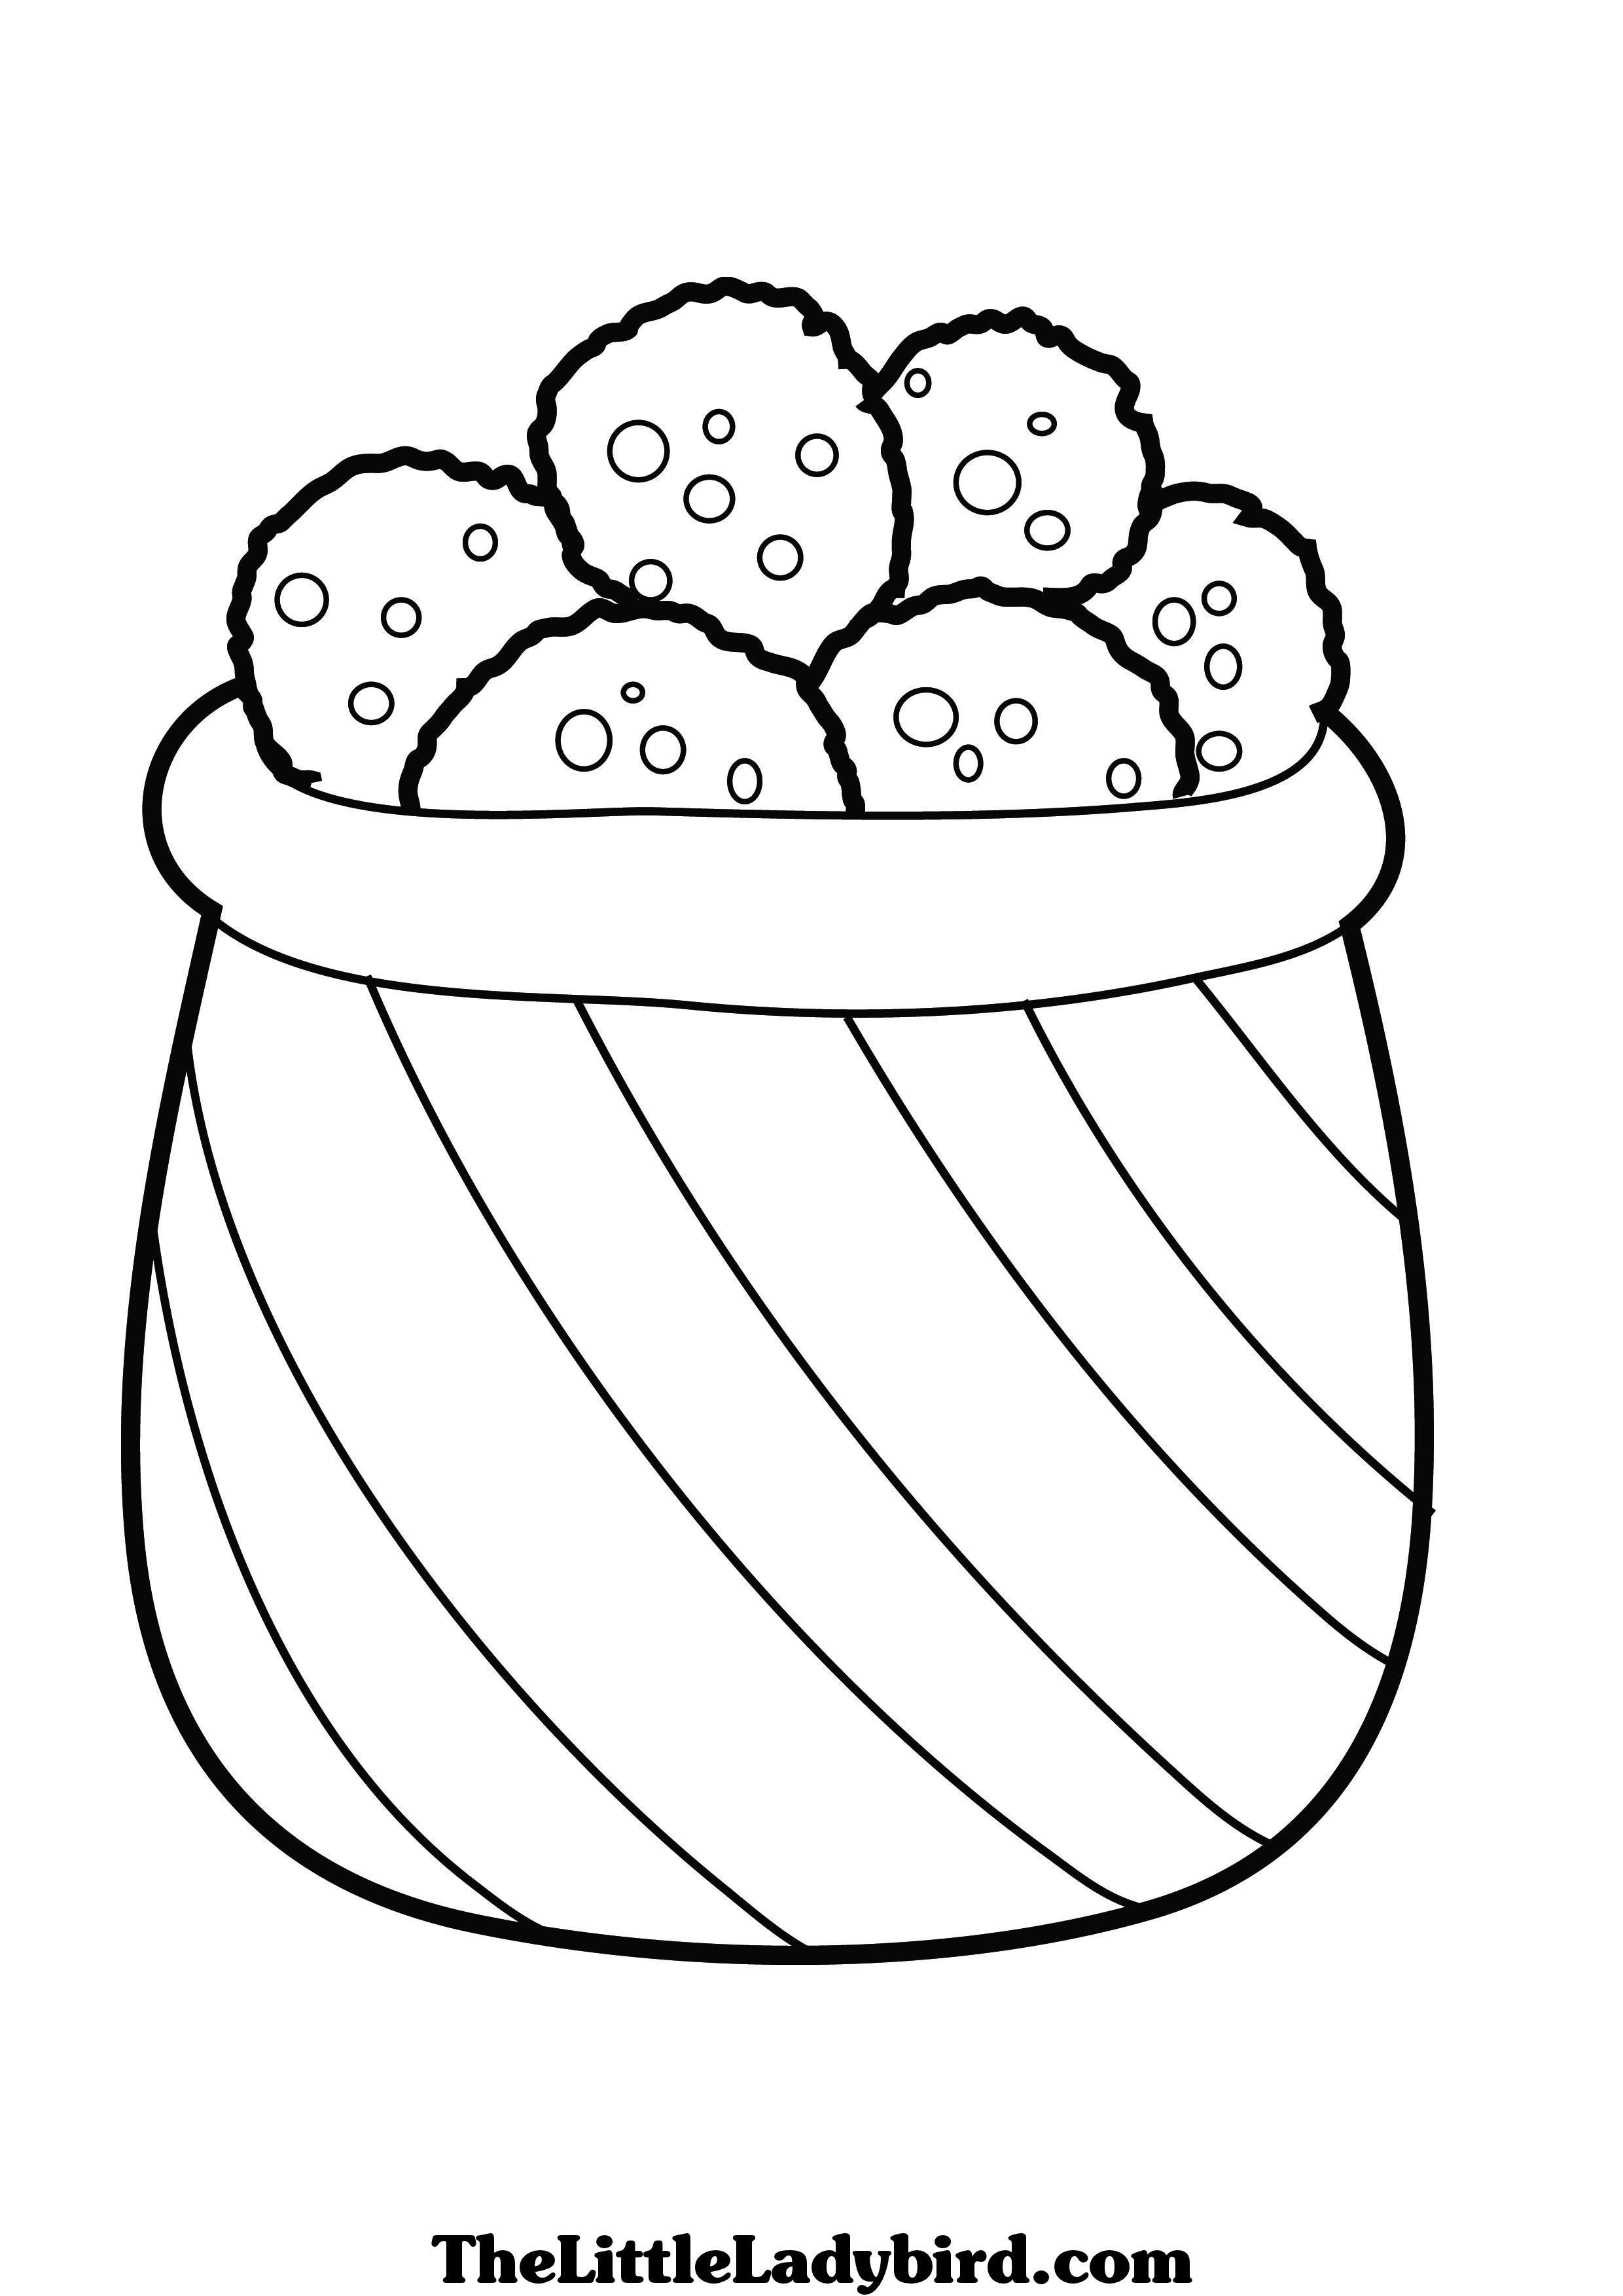 Christmas Lights Color Pages Coloring Pages Of Christmas Holly Wreaths Cookies Lights Cupcakes